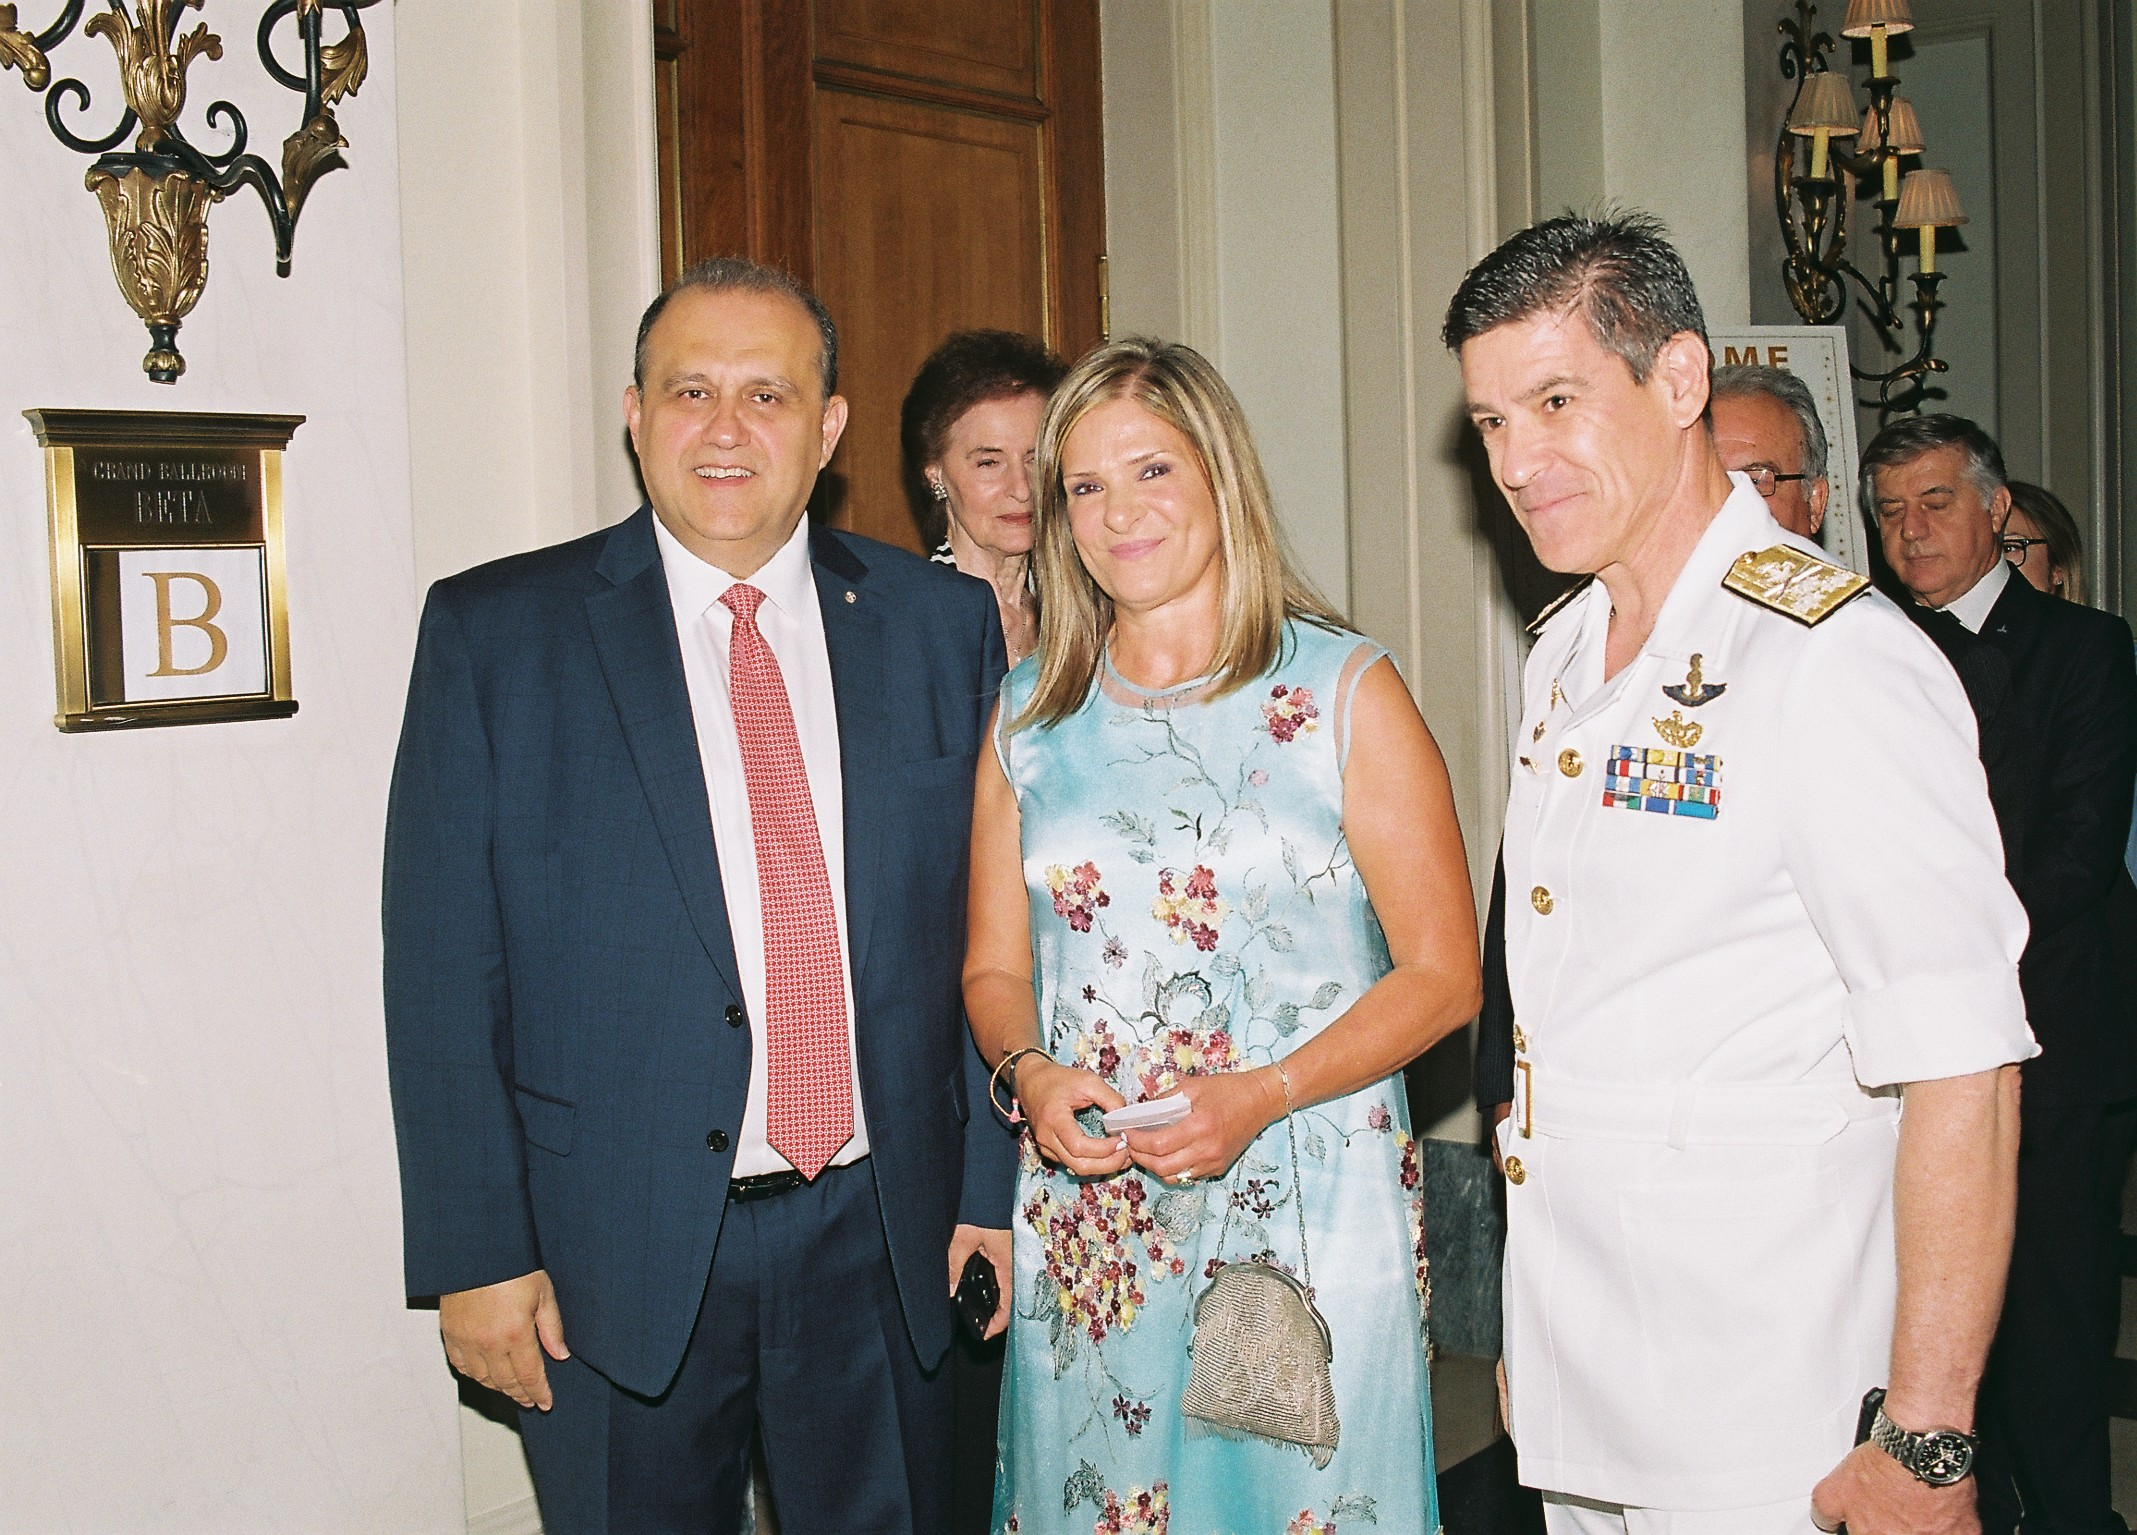 Nick Larigakis with Vice Admiral Ioannis G. Paulopoulos HN, Commander in Chief of the Hellenic Fleet and his wife.